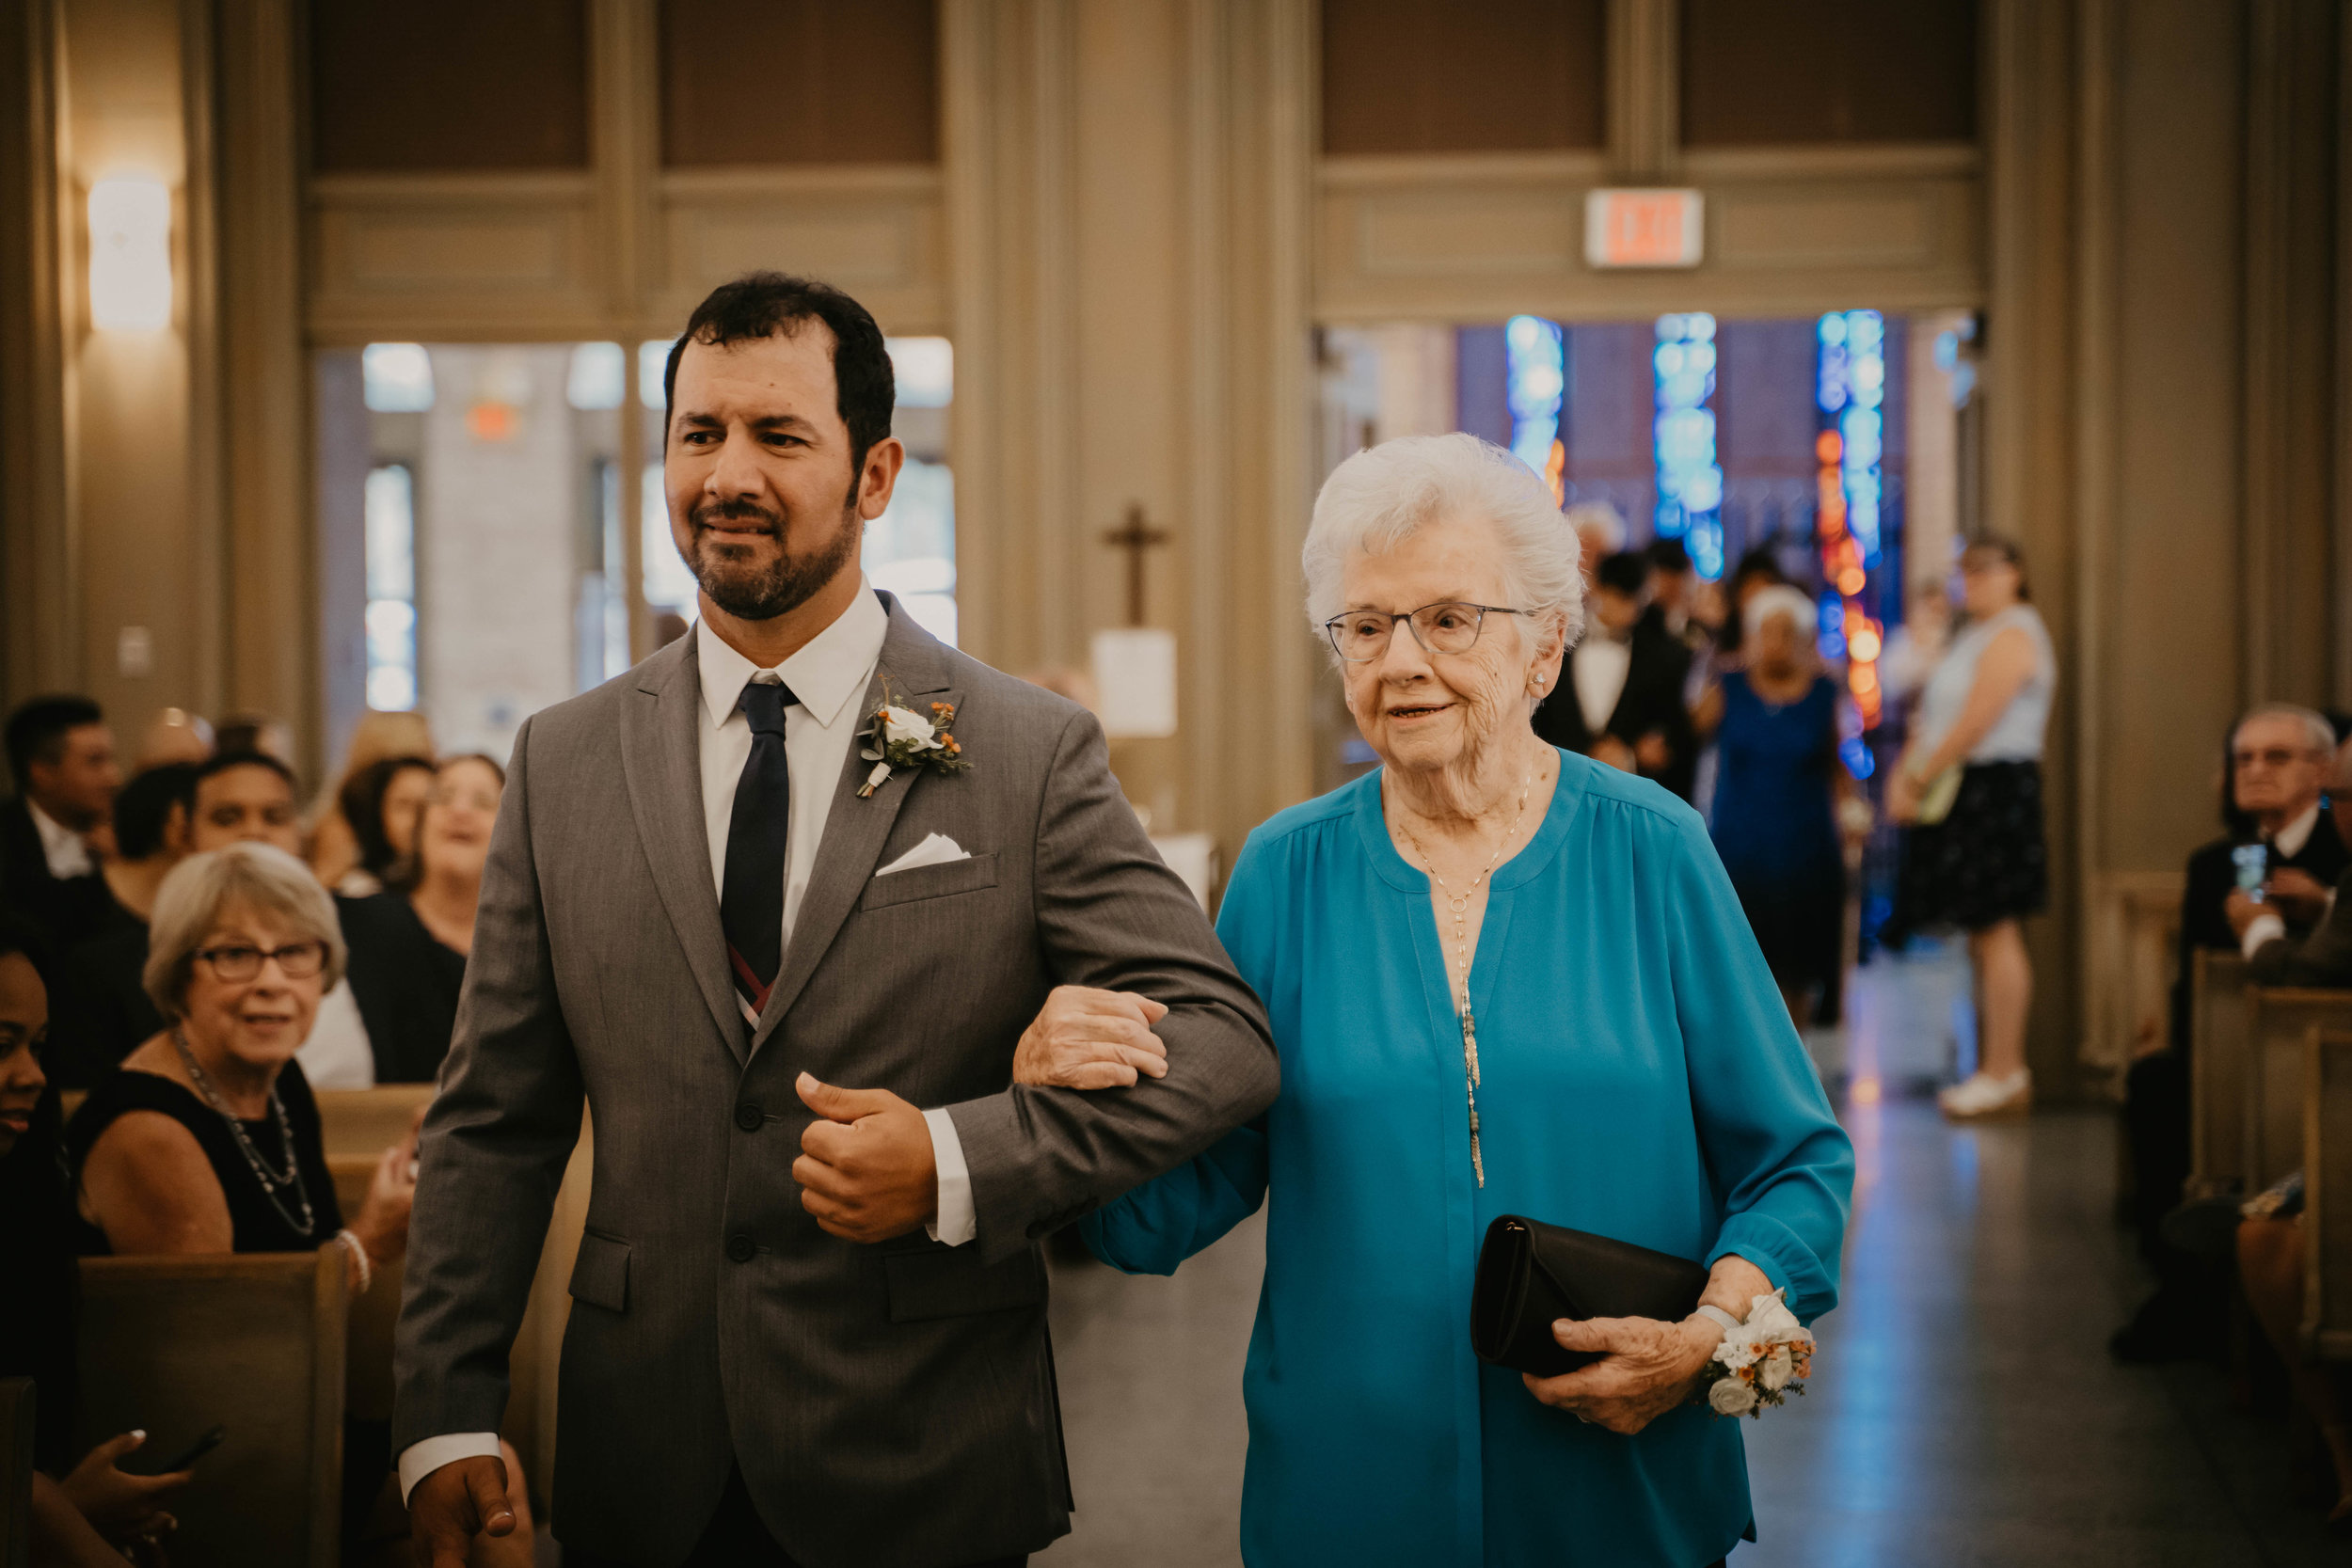 austin-wedding-videographer (336 of 999).jpg